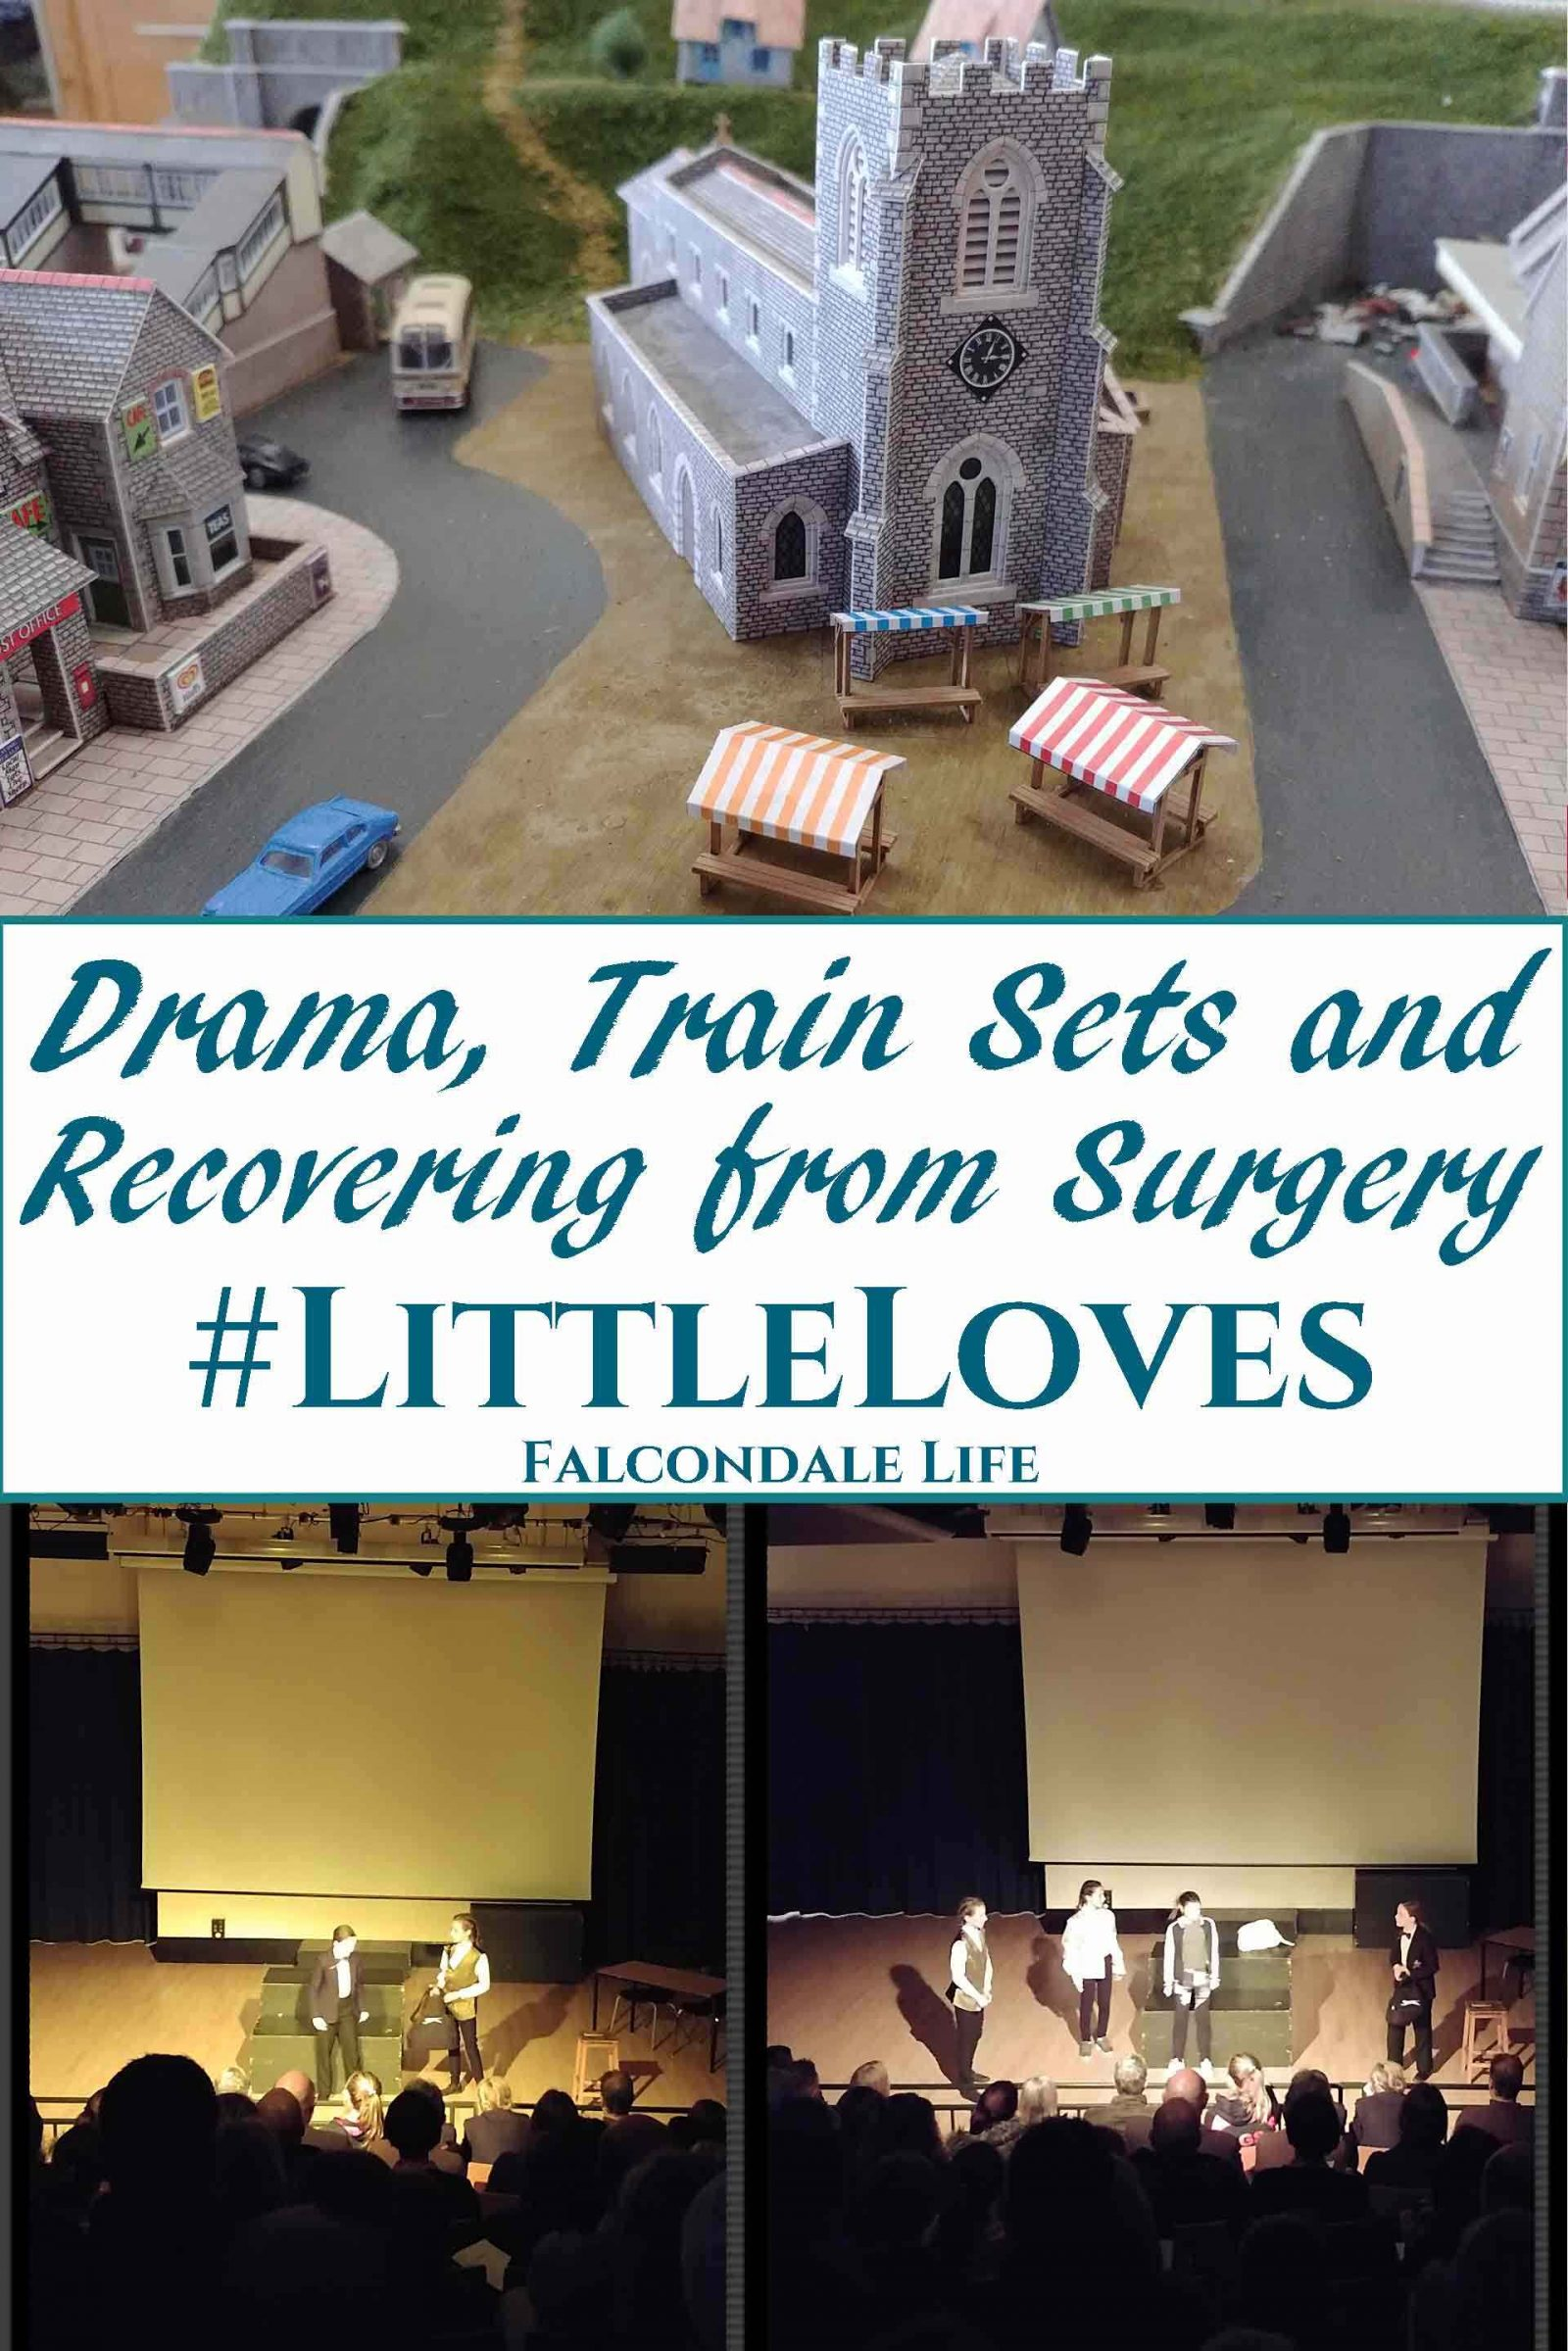 Miniature N gauge railway village. School Drama Showcase event, kids on stage. Drama, Train Sets and Recovering from Surgery #LittleLoves on Falcondale Life blog. A personal blog update about things I have been watching, reading, wearing and making recently.